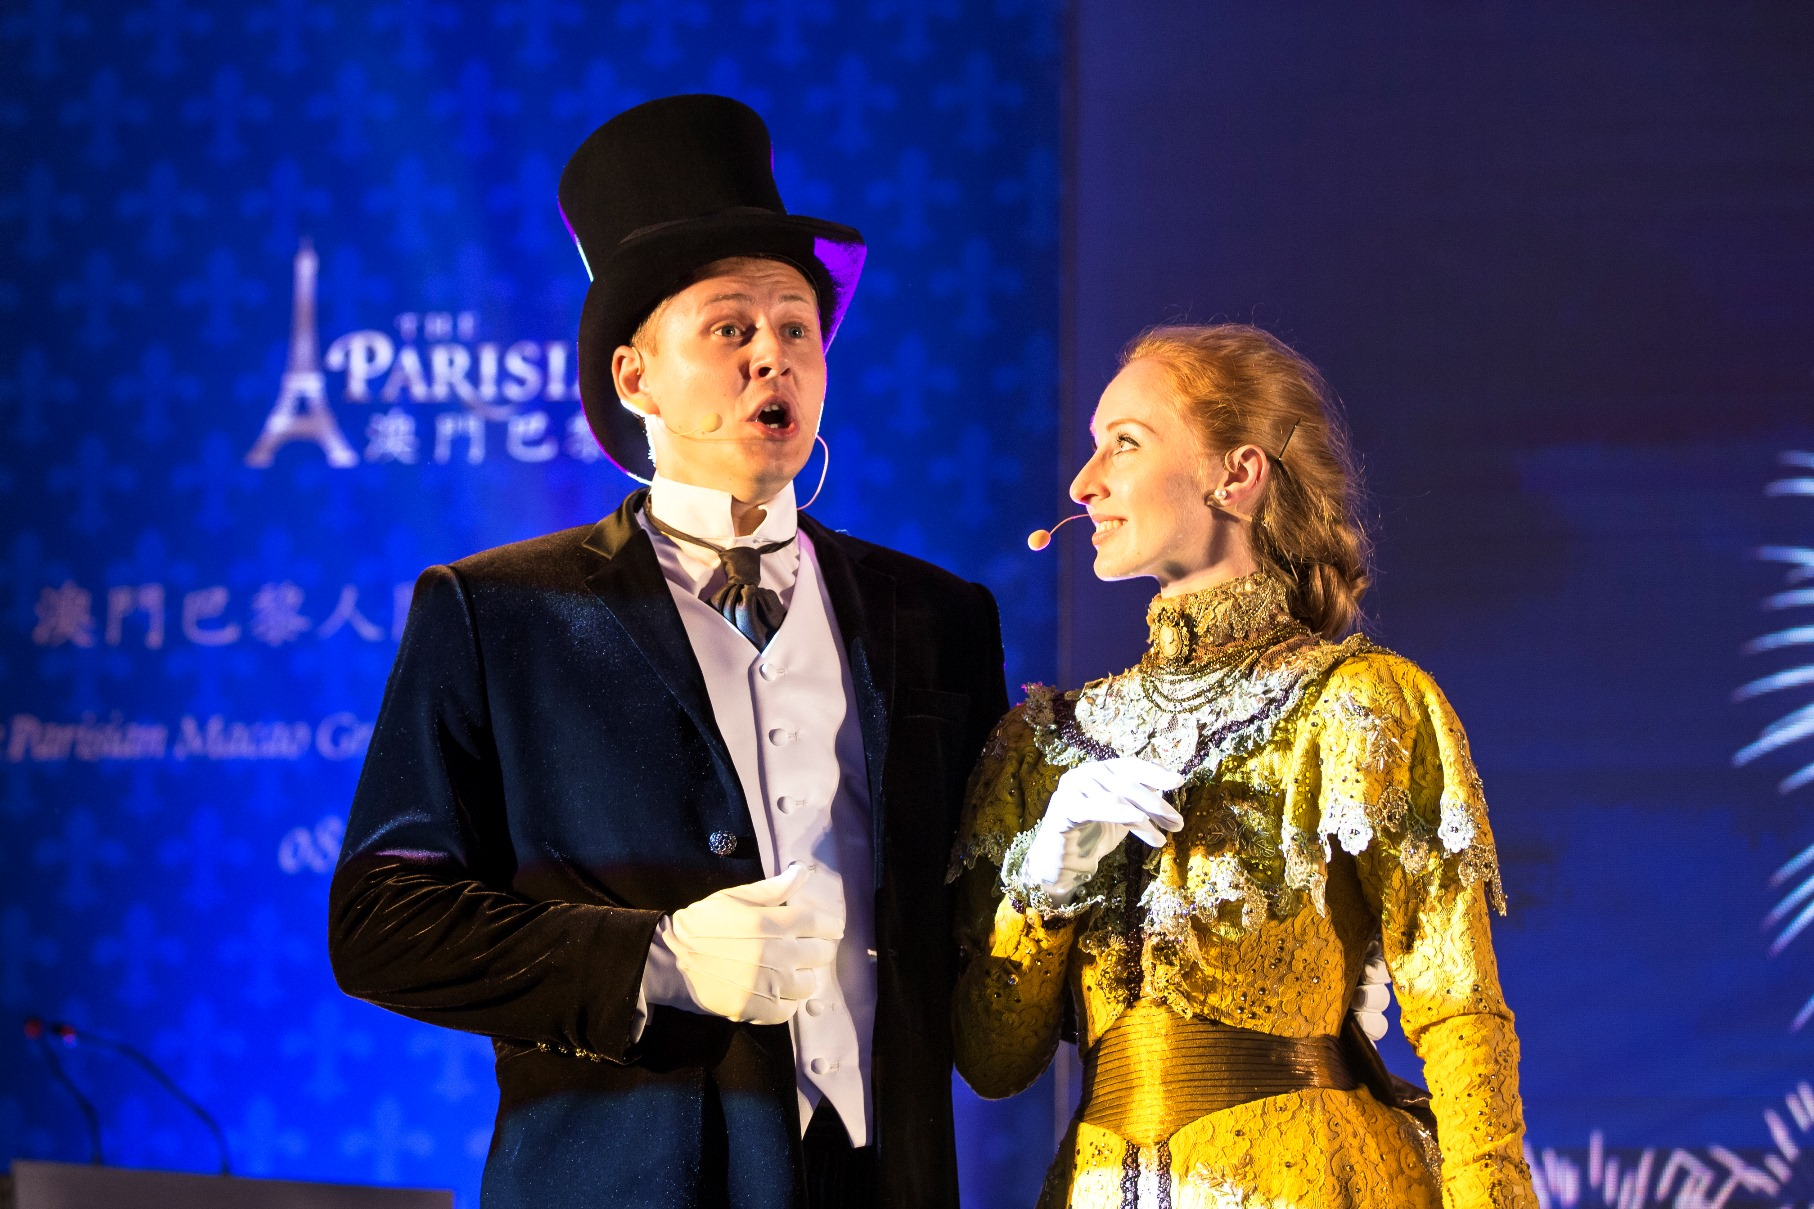 The Parisian Macao Opening Performance